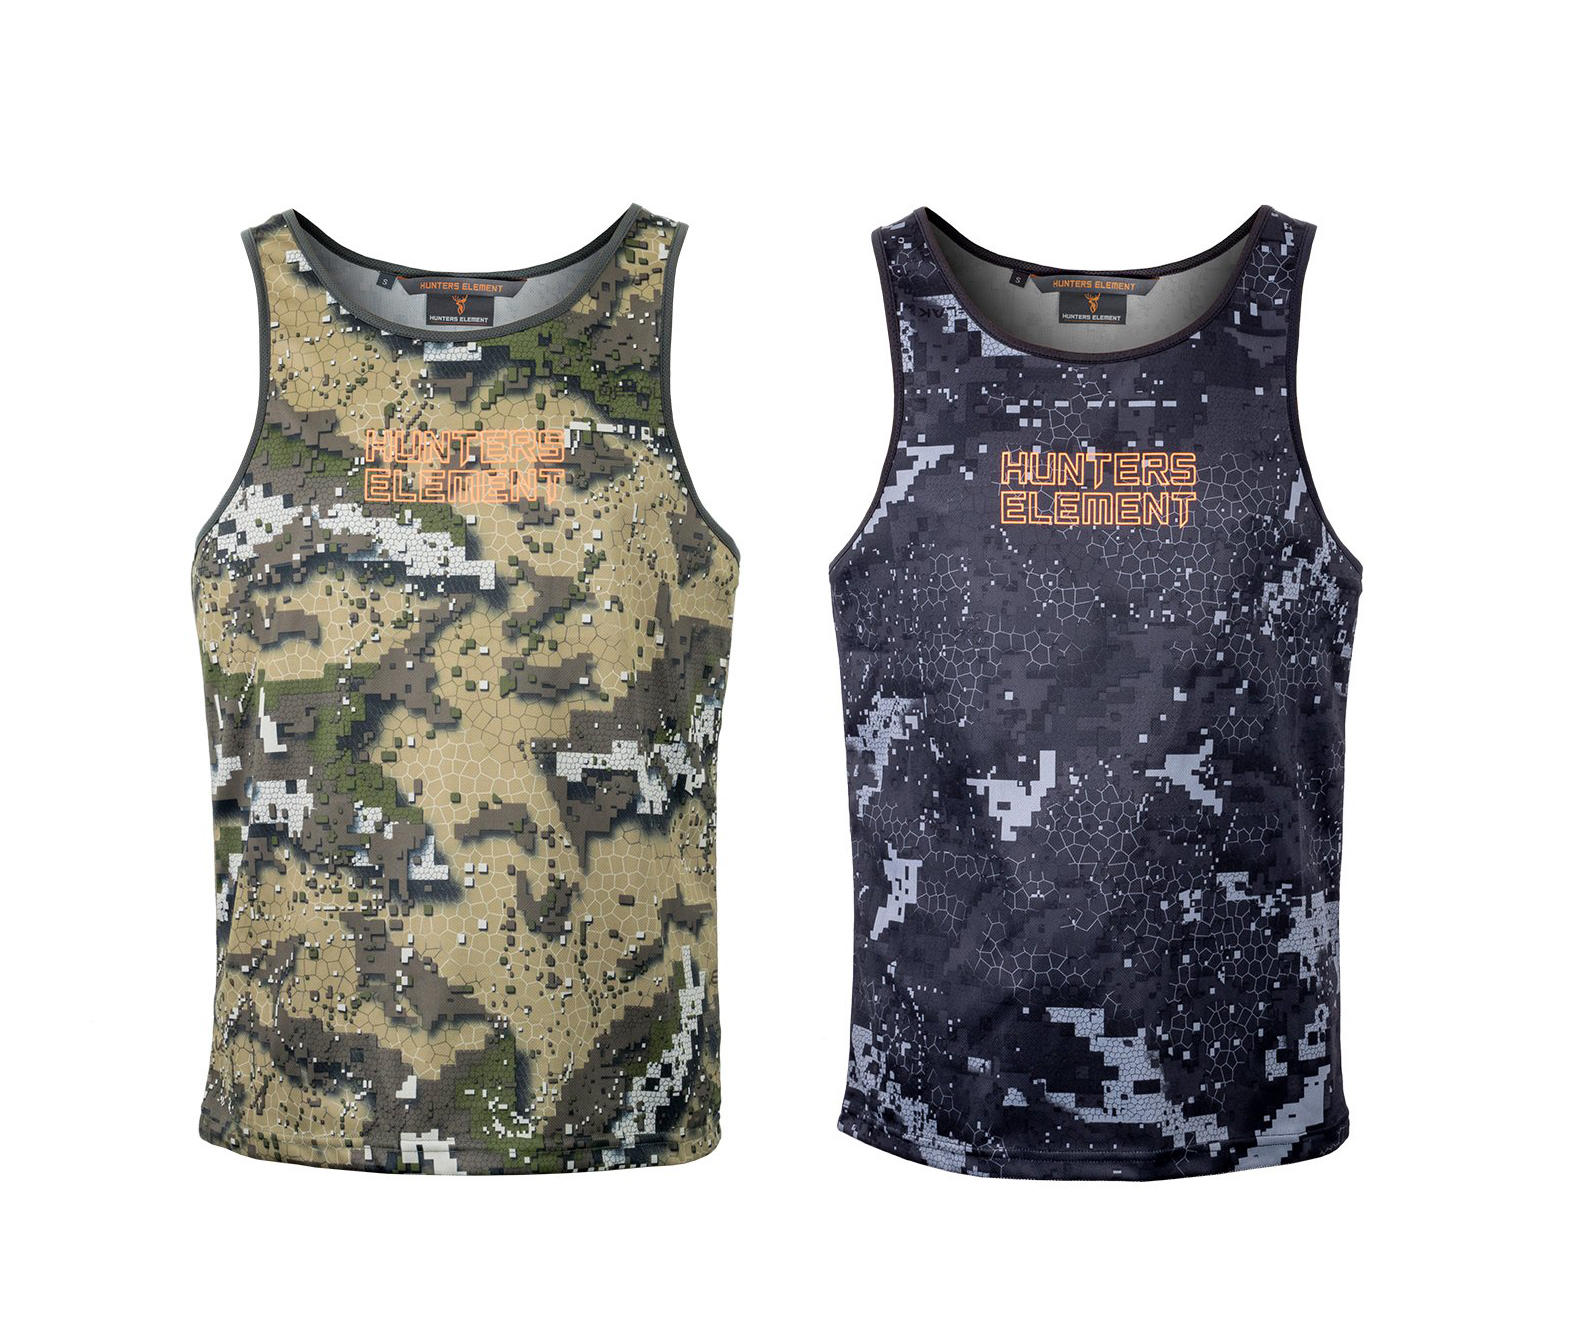 Hunters Element Eclipse Singlet - Camo